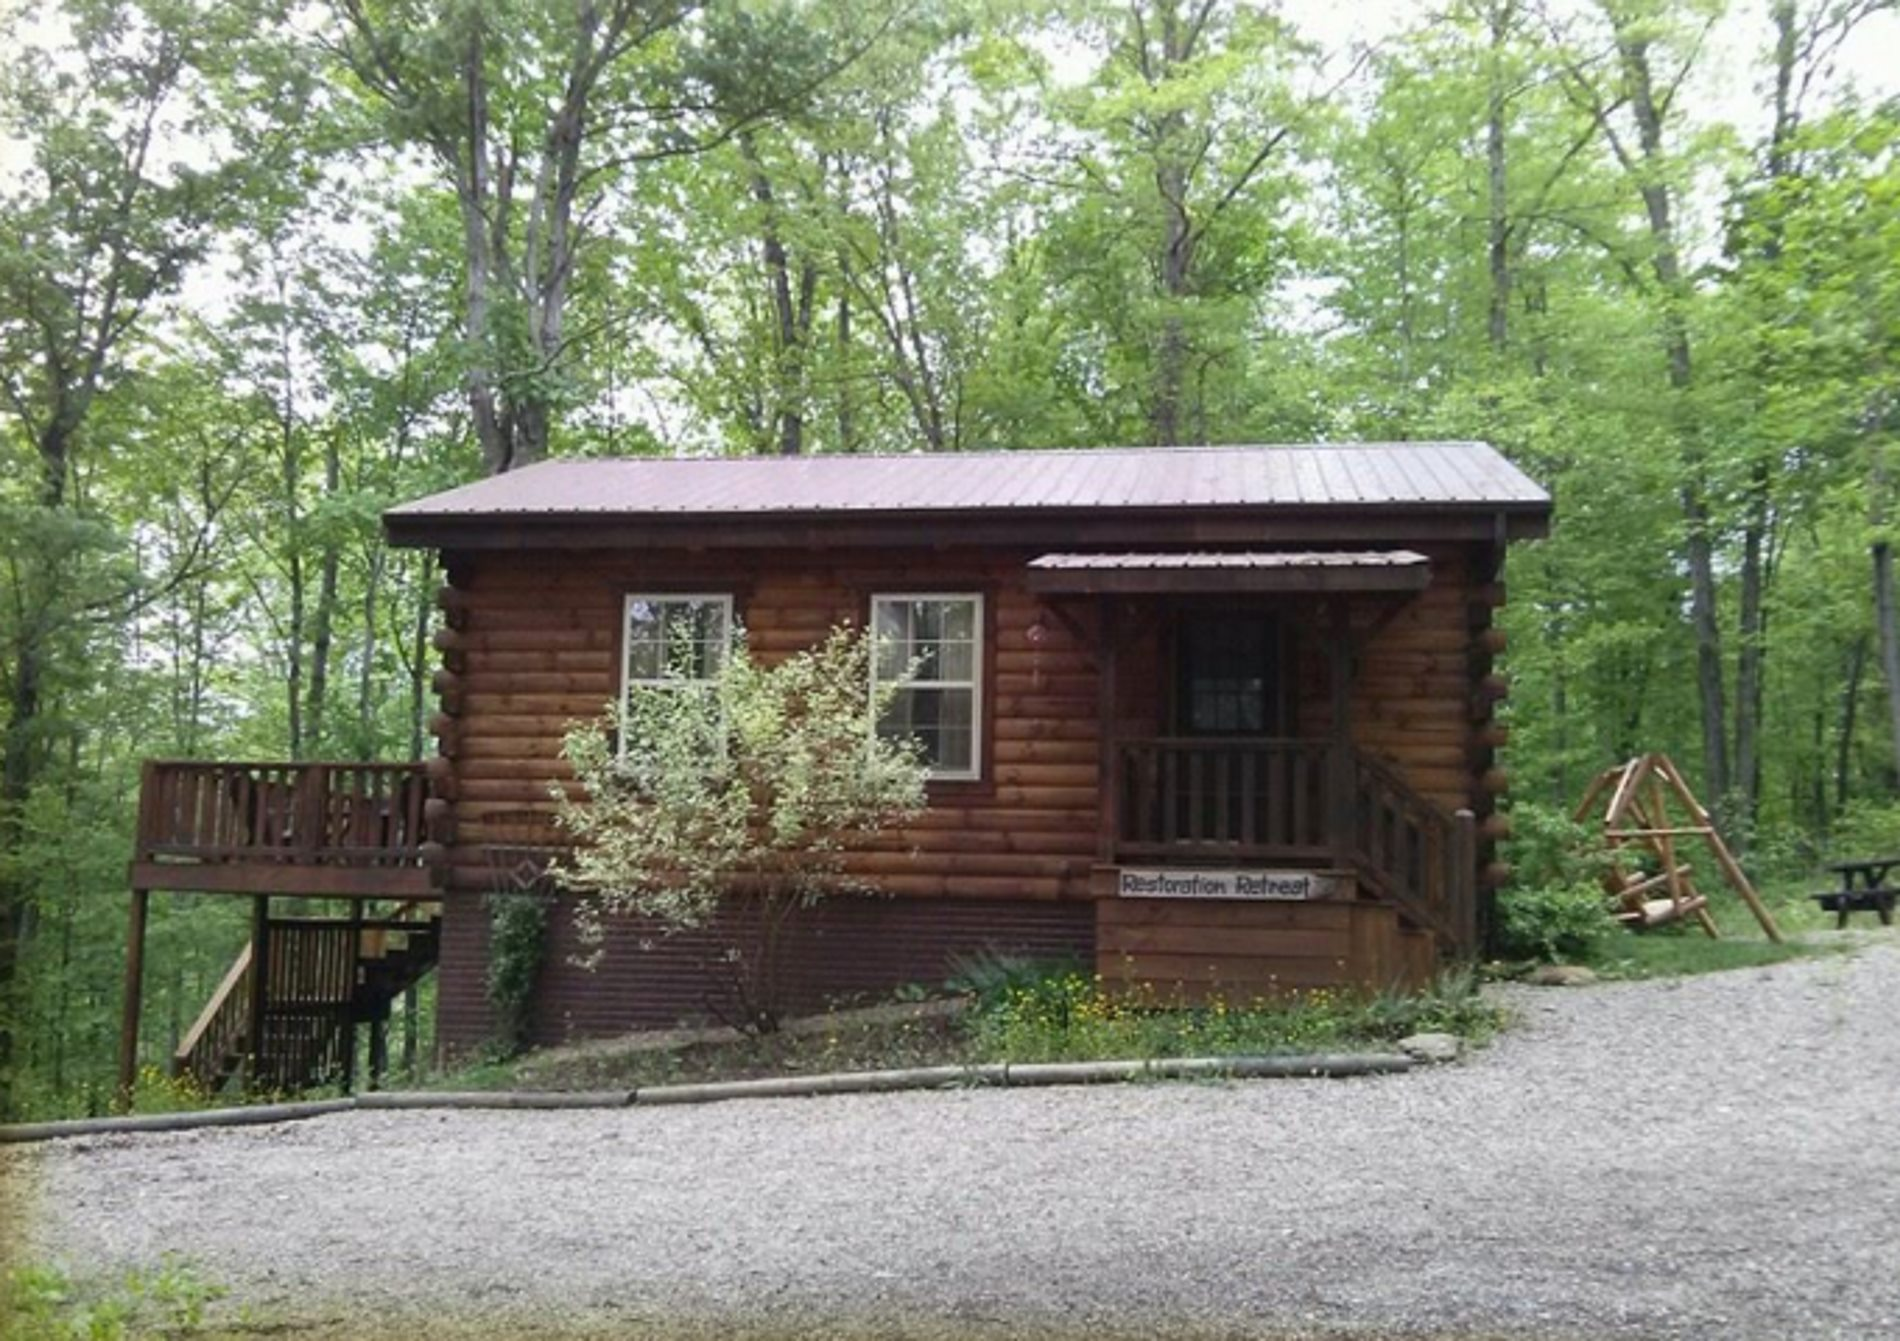 louisiana tubs property inn cottages glenlaurel in previous hot registry select a with cabins scottish